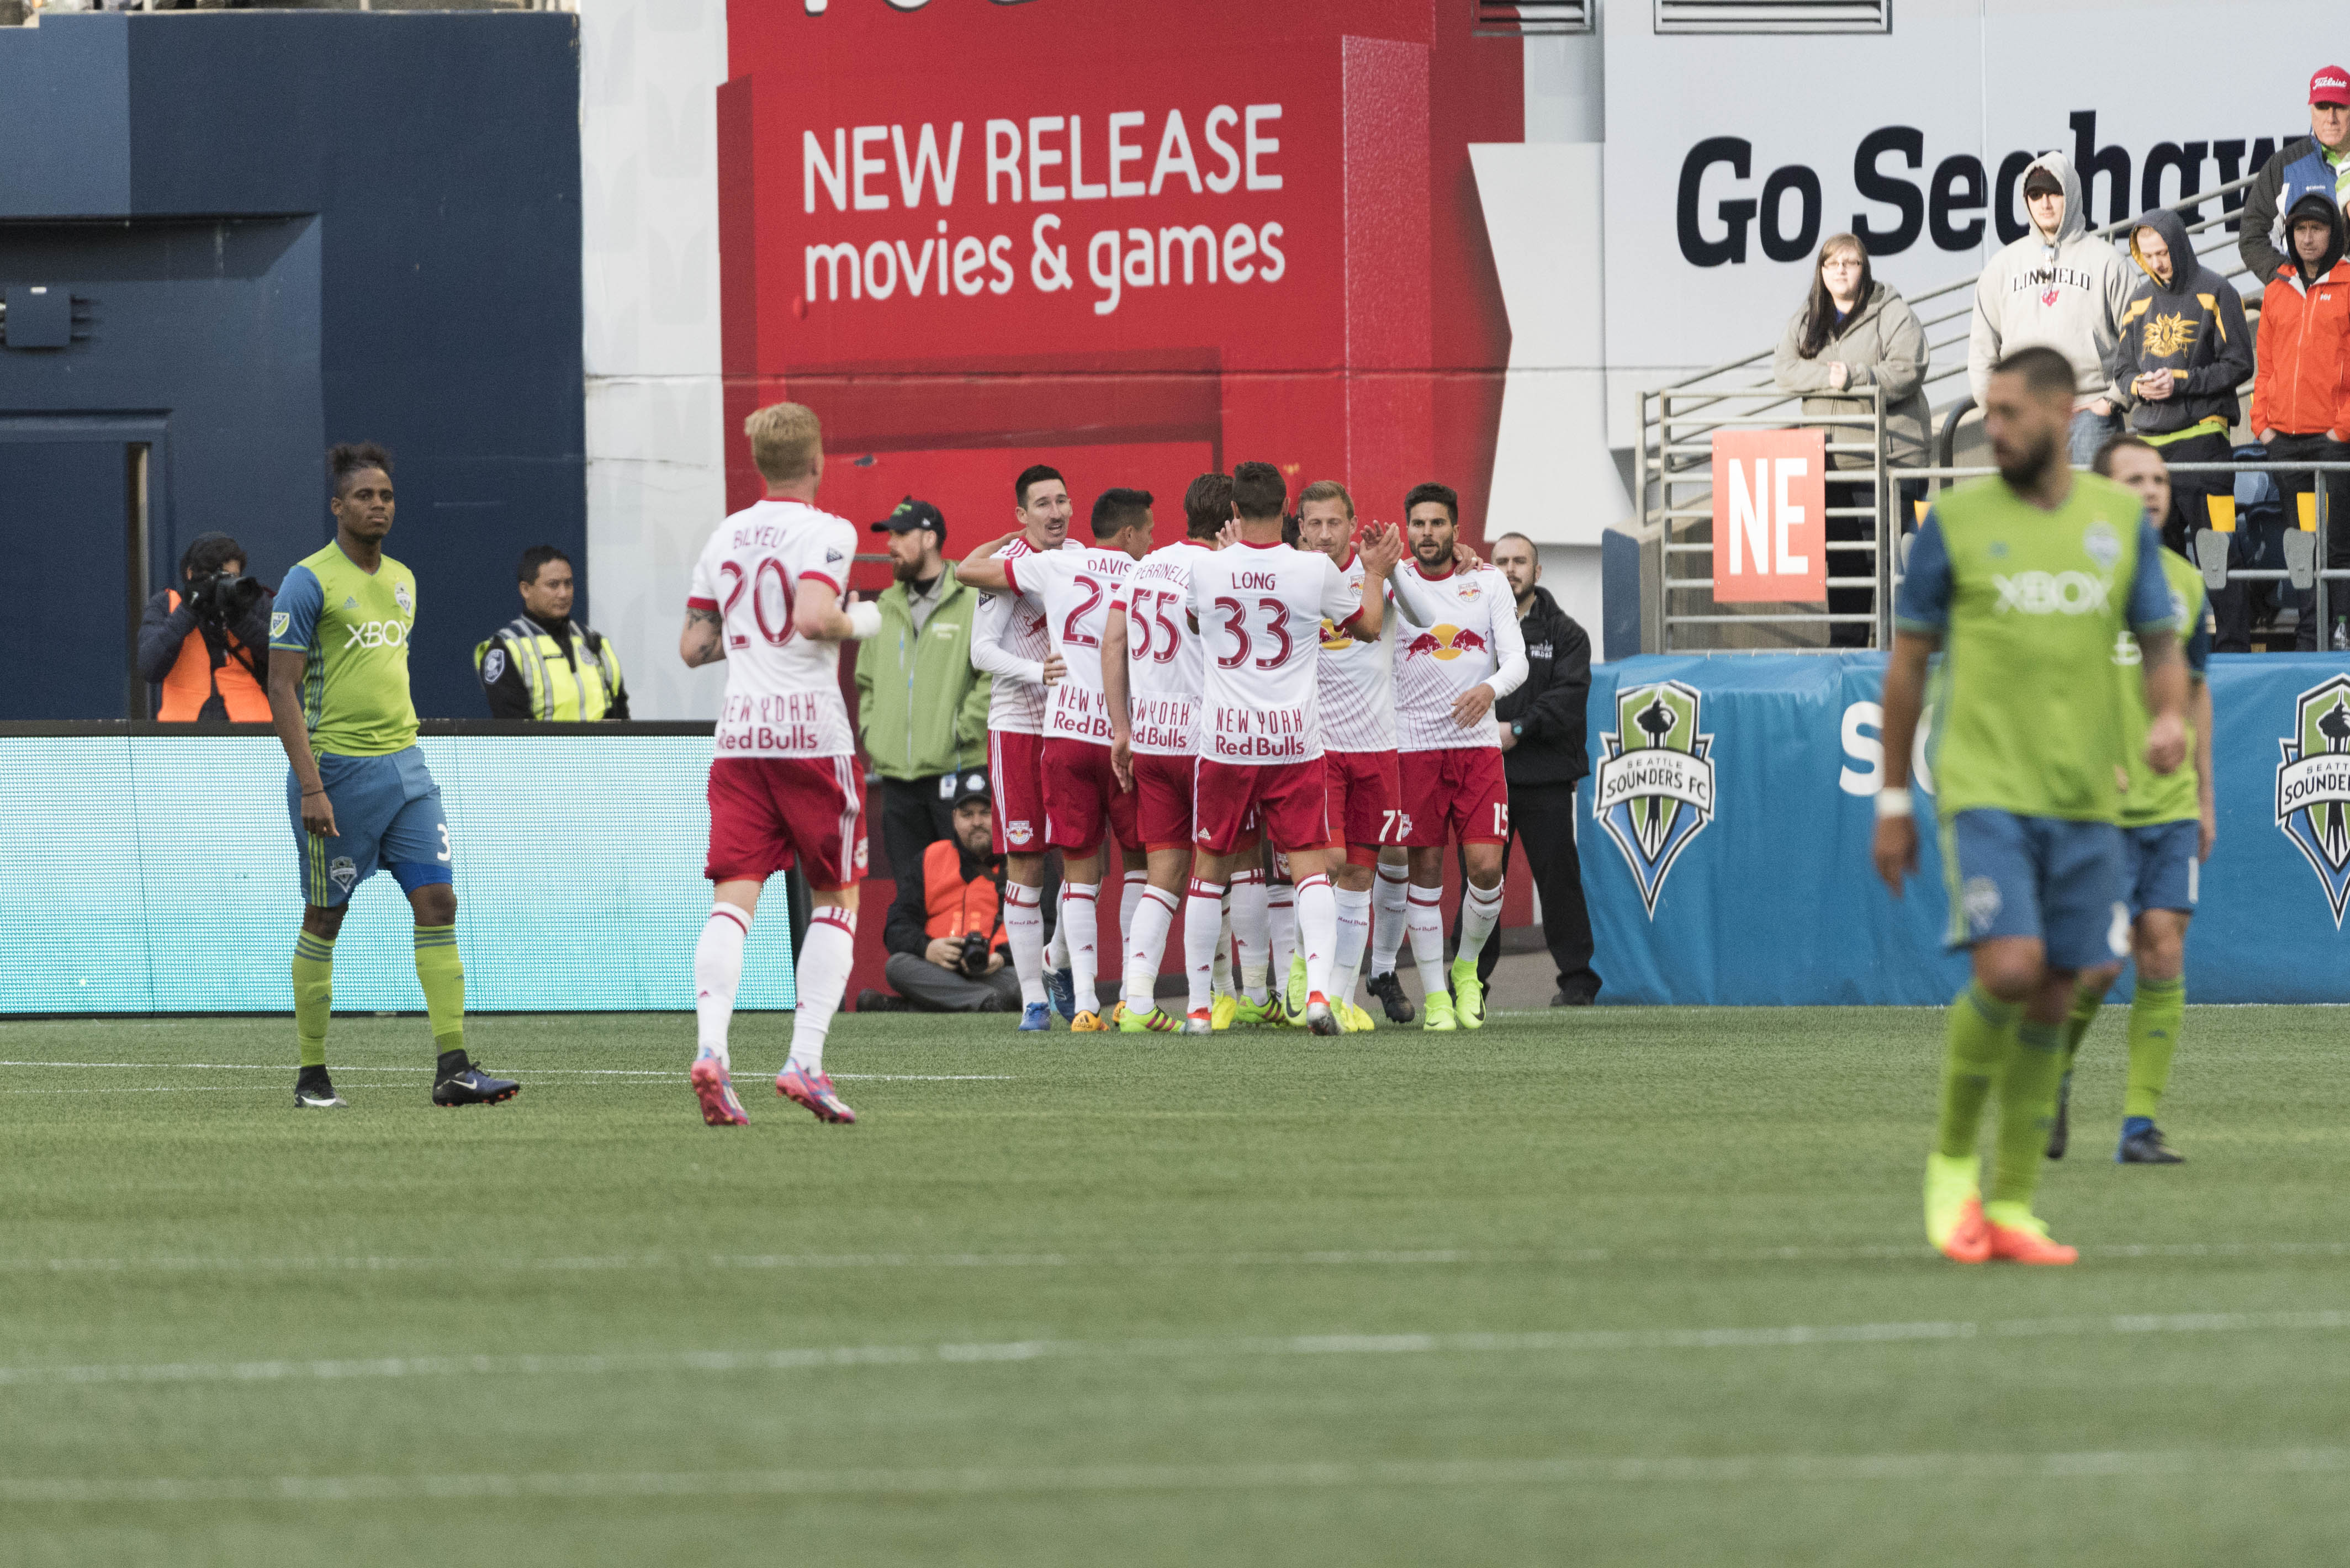 9958899-mls-new-york-red-bulls-at-seattle-sounders-fc